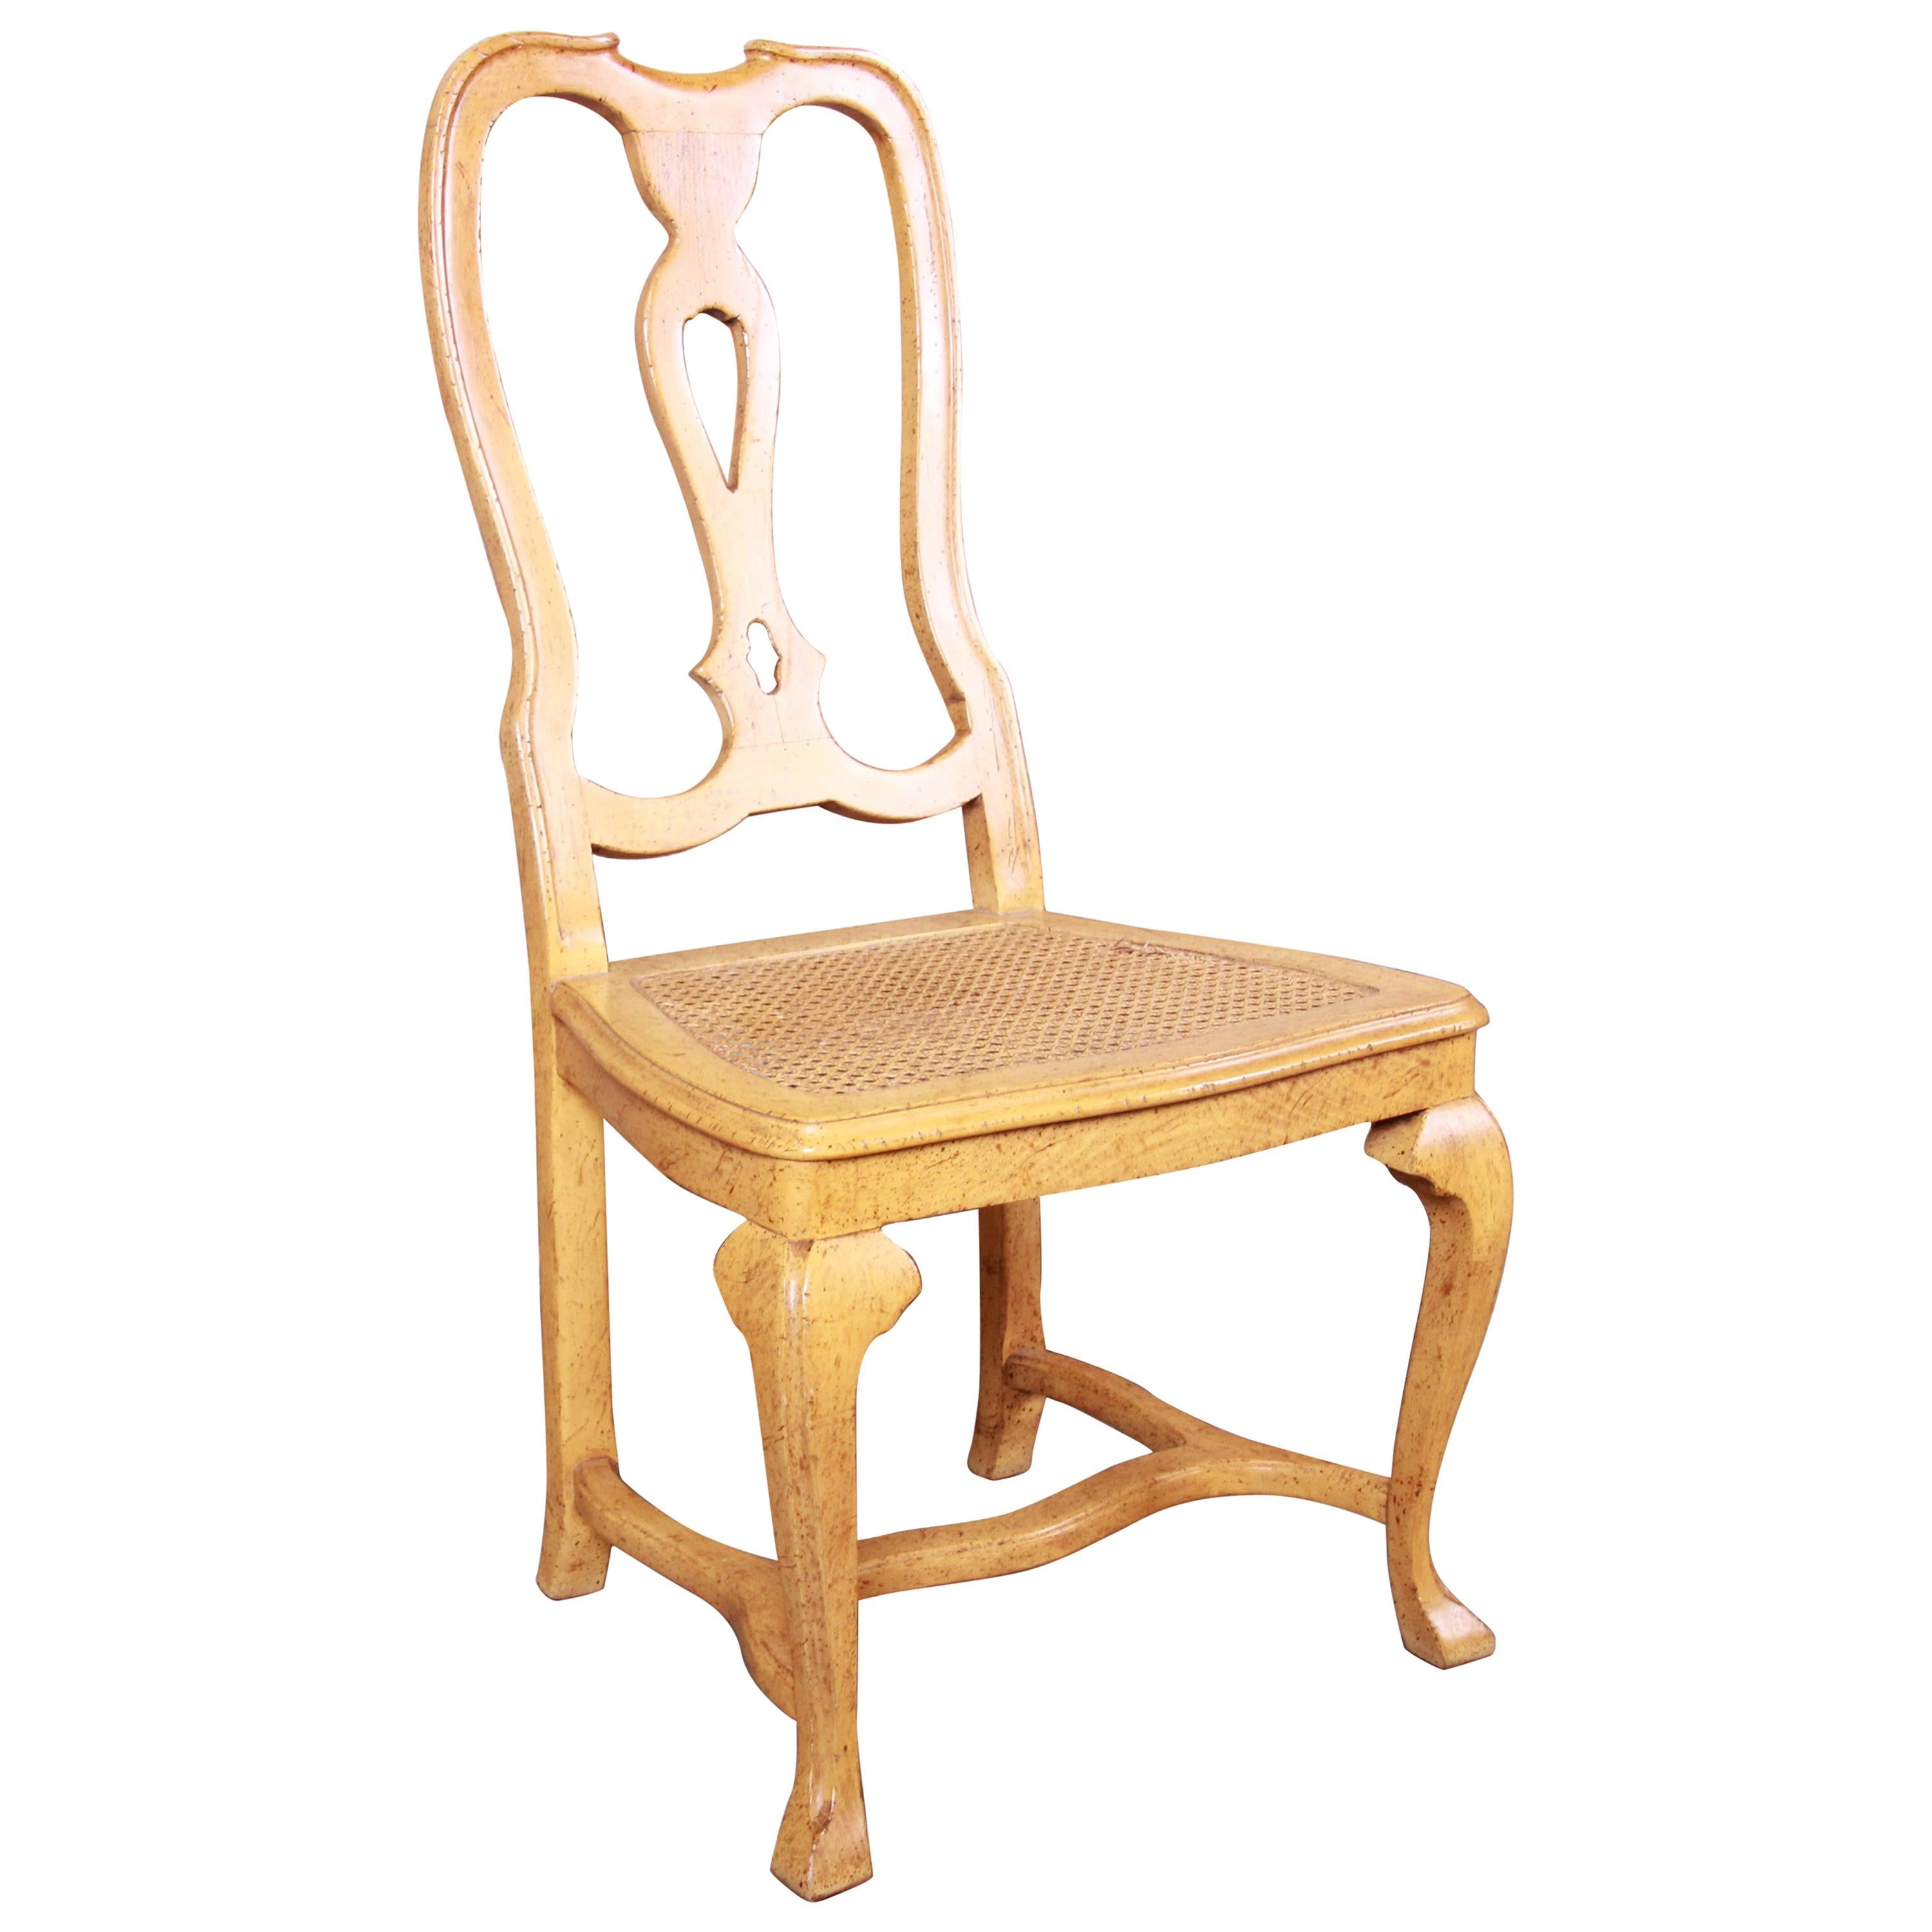 Baker Furniture French Provincial Louis XV Oak and Cane Dining or Side Chair